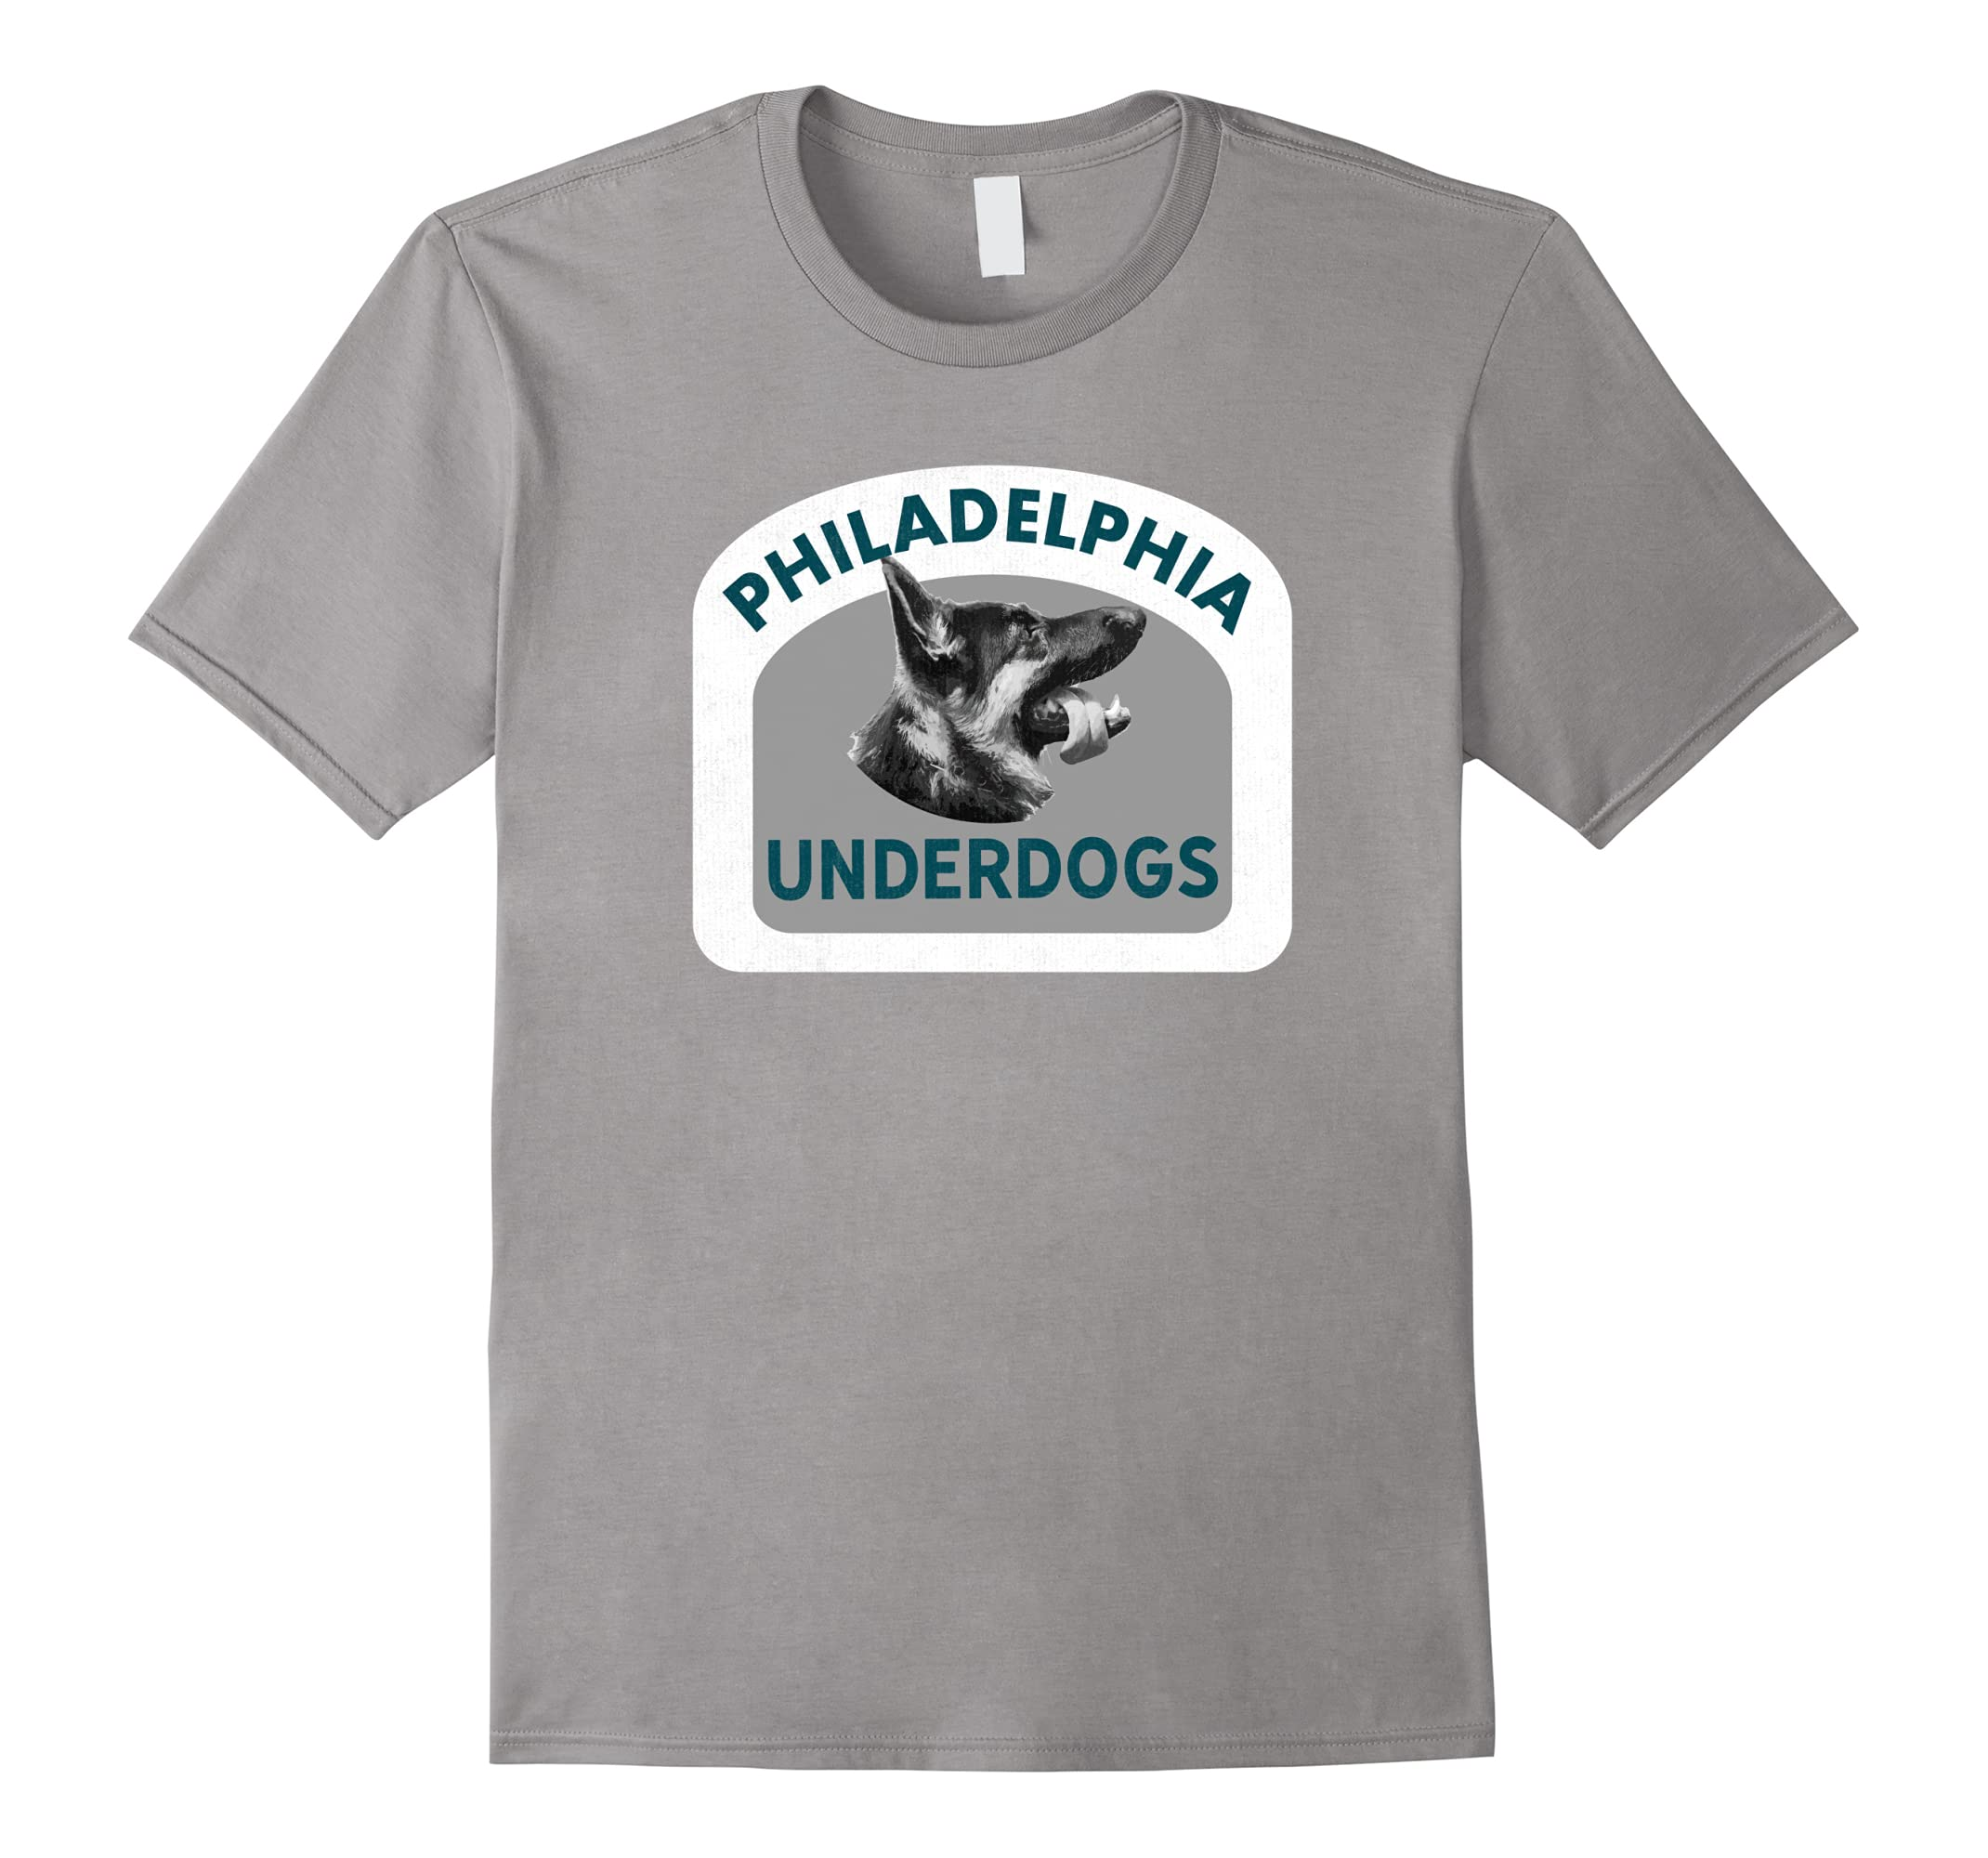 Classic Philadelphia Underdogs Game Day T-Shirt-ah my shirt one gift